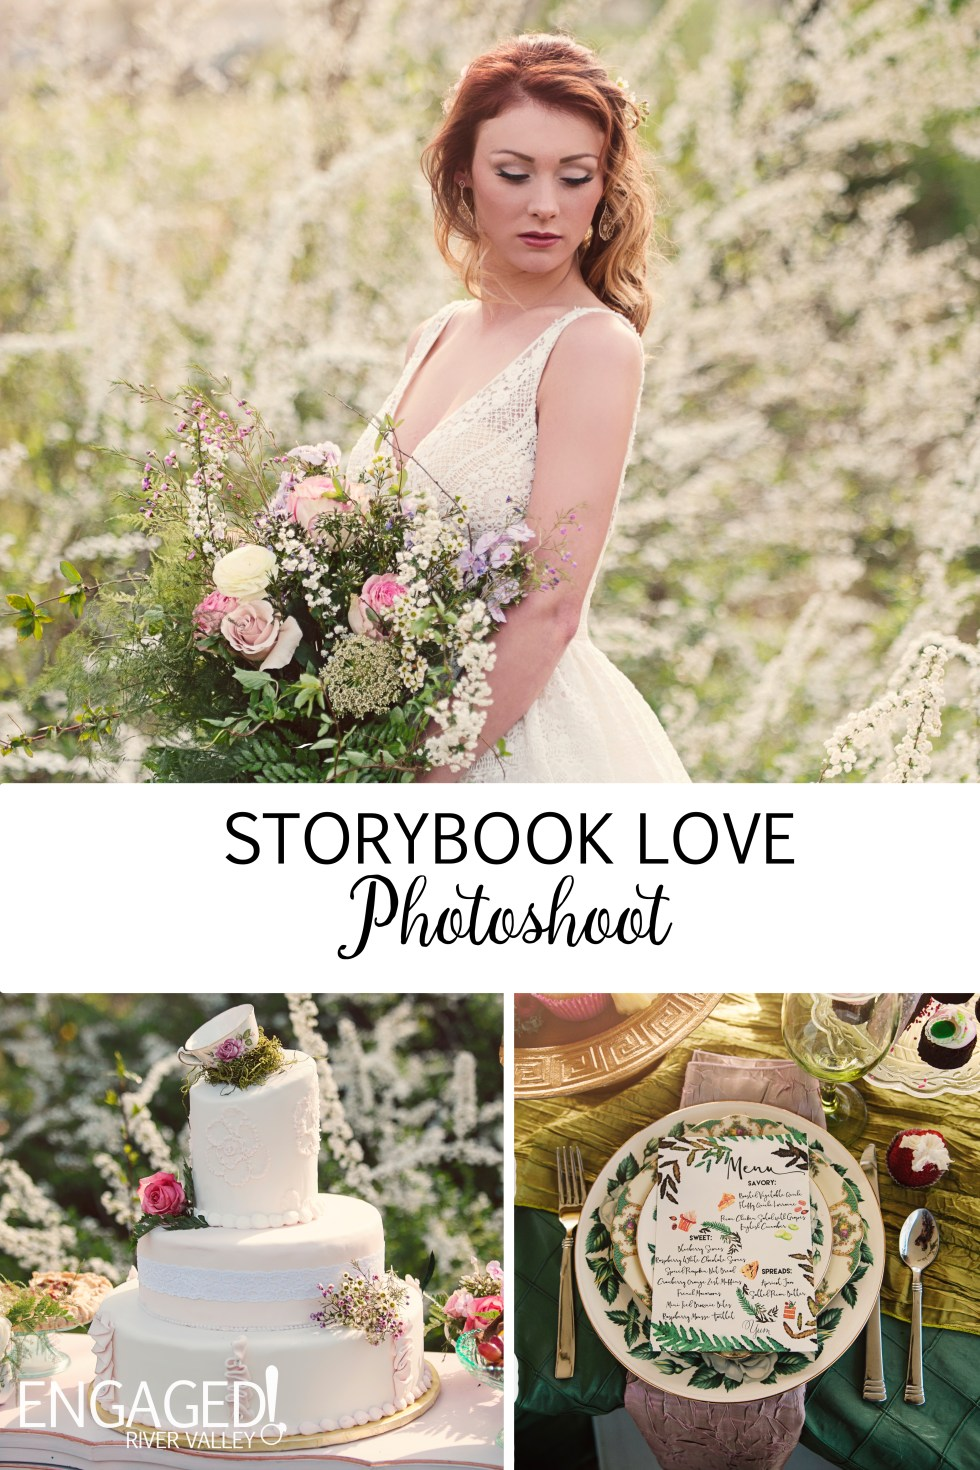 Storybook Love Inspiration Shoot - Engaged-RiverValleydotcom copy